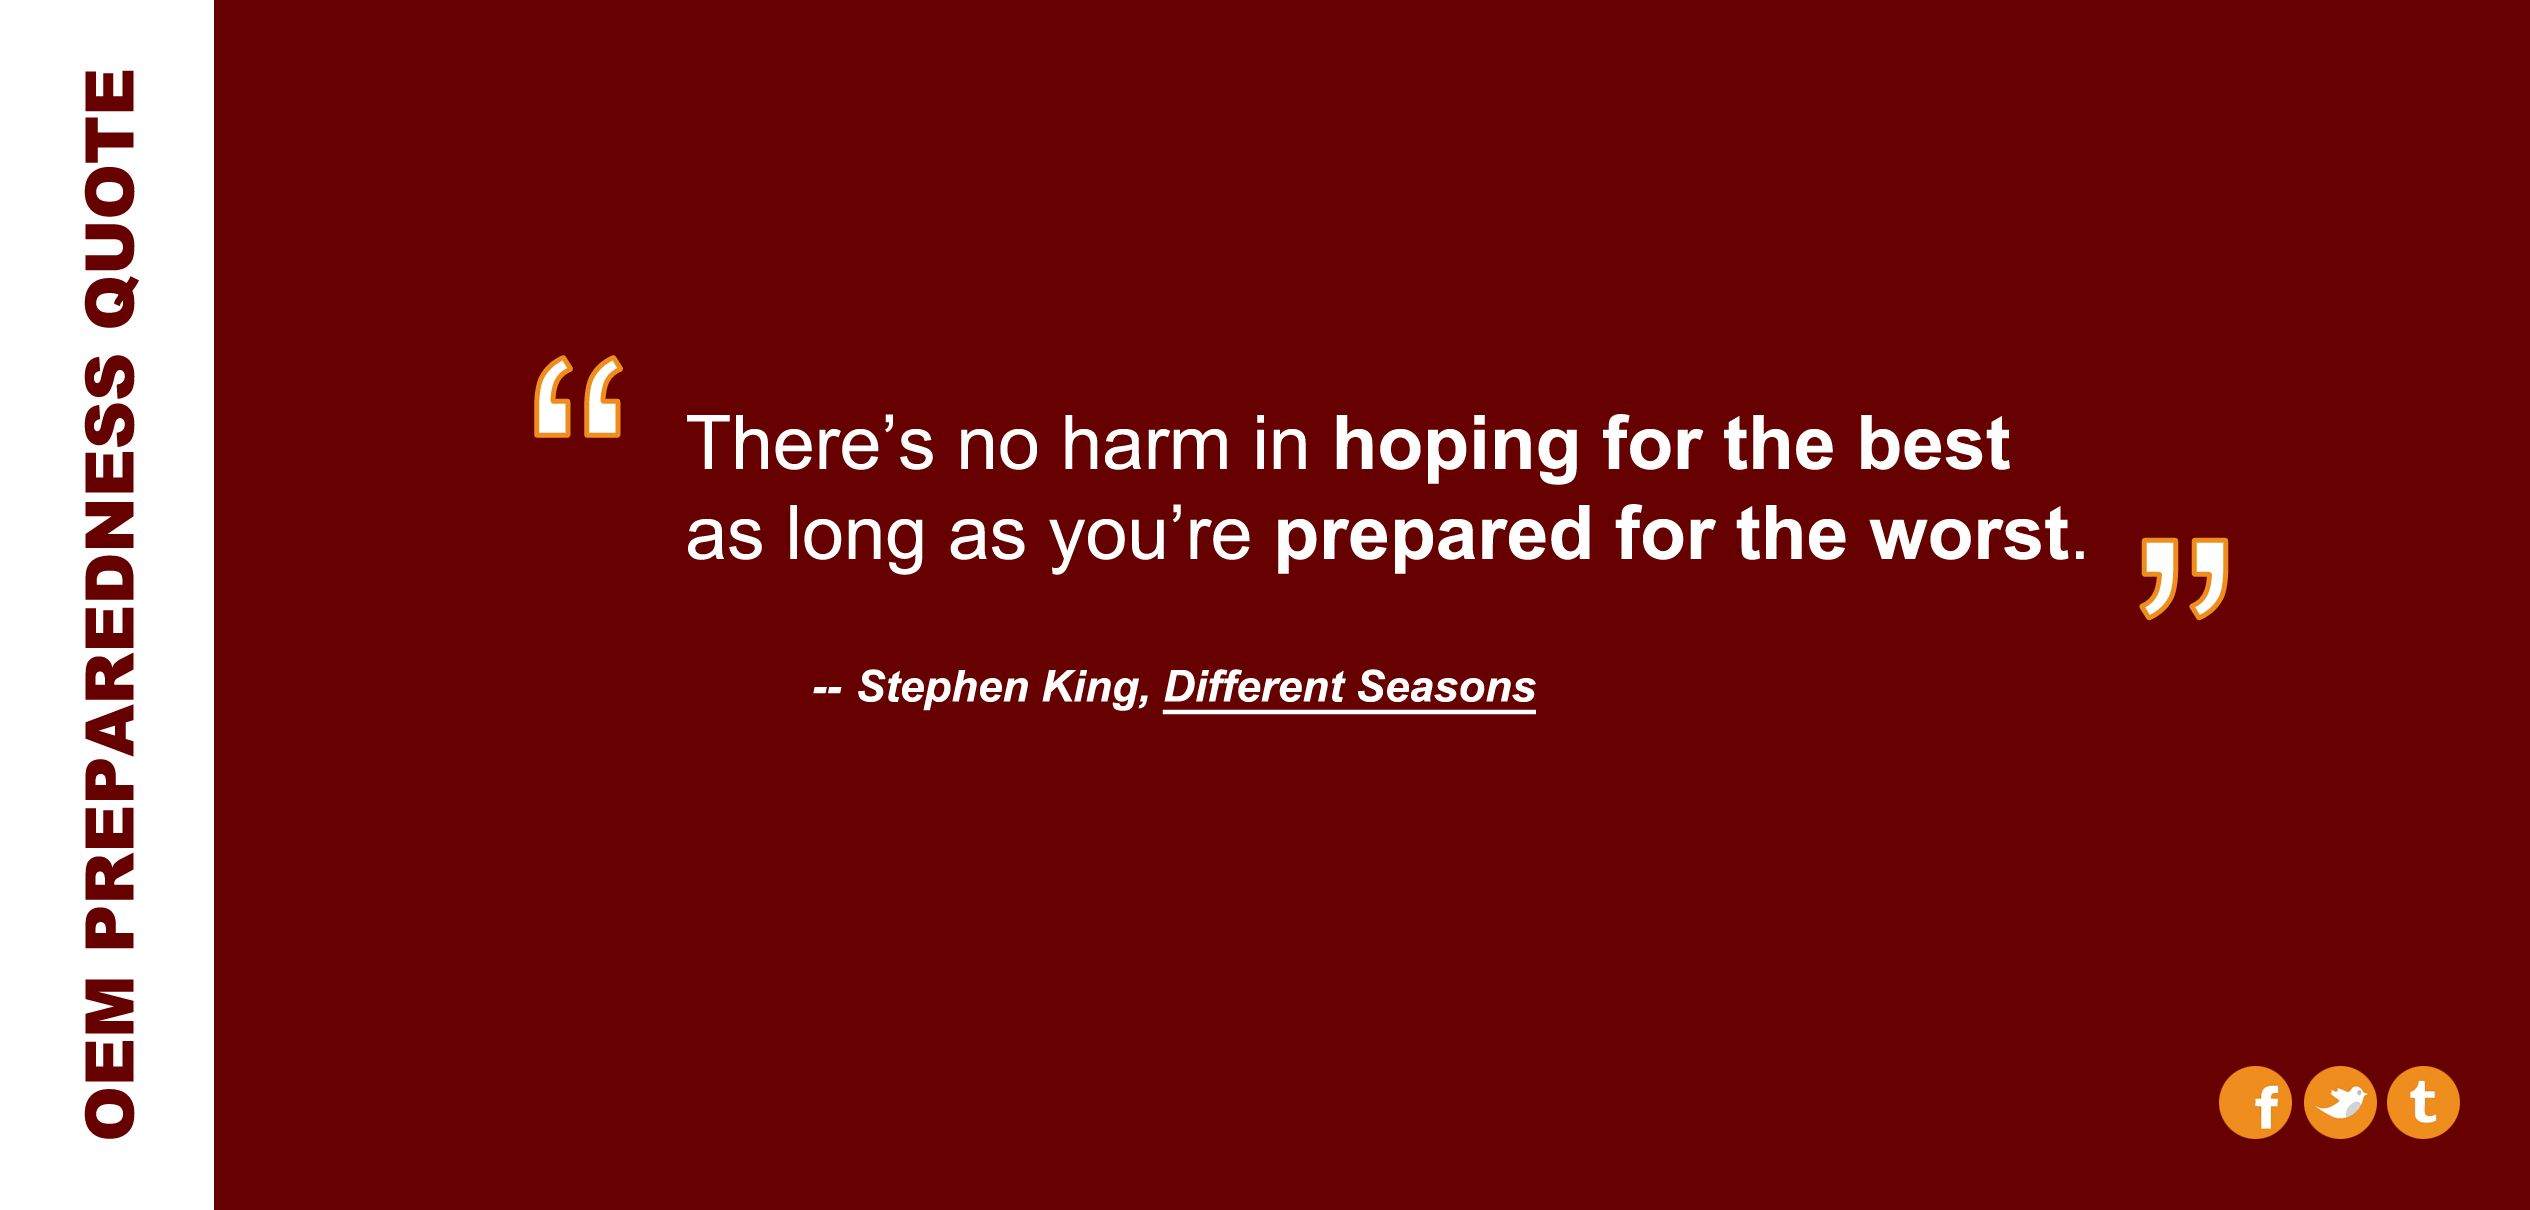 Quote From Stephen King In His Novel Different Seasons Manager